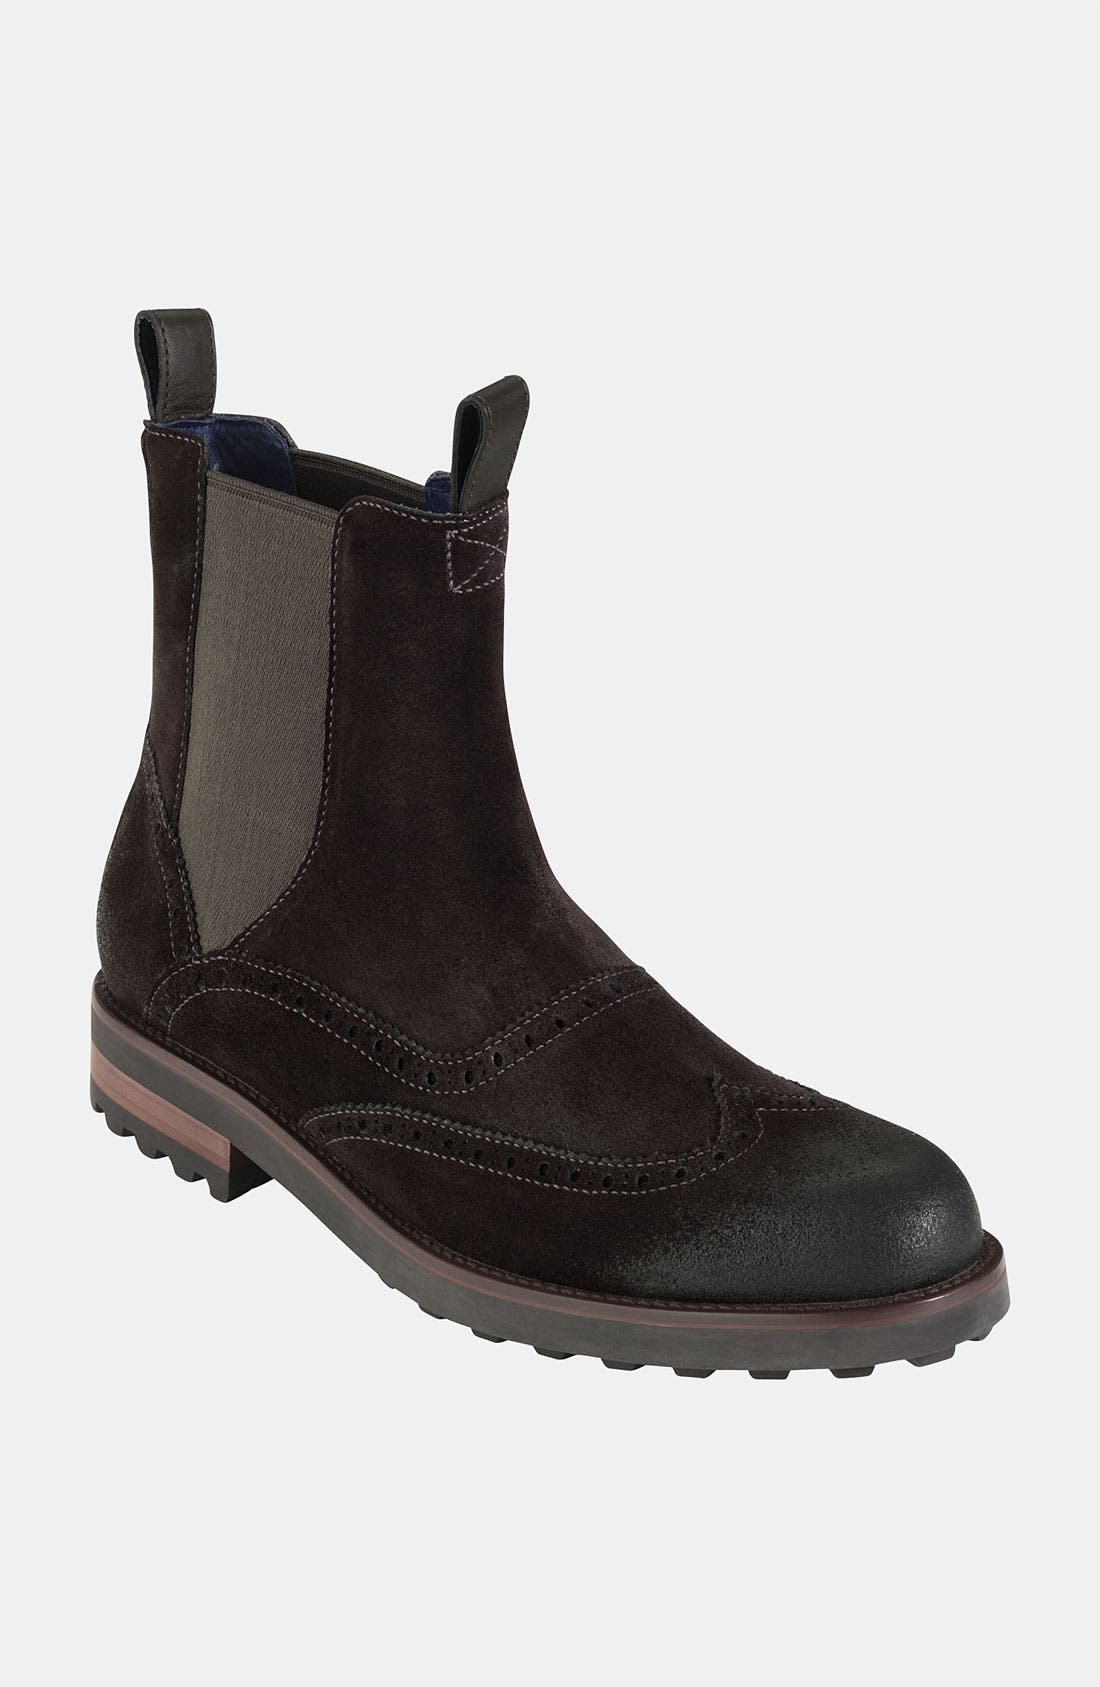 Main Image - Cole Haan 'Air Grayson' Wingtip Chelsea Boot